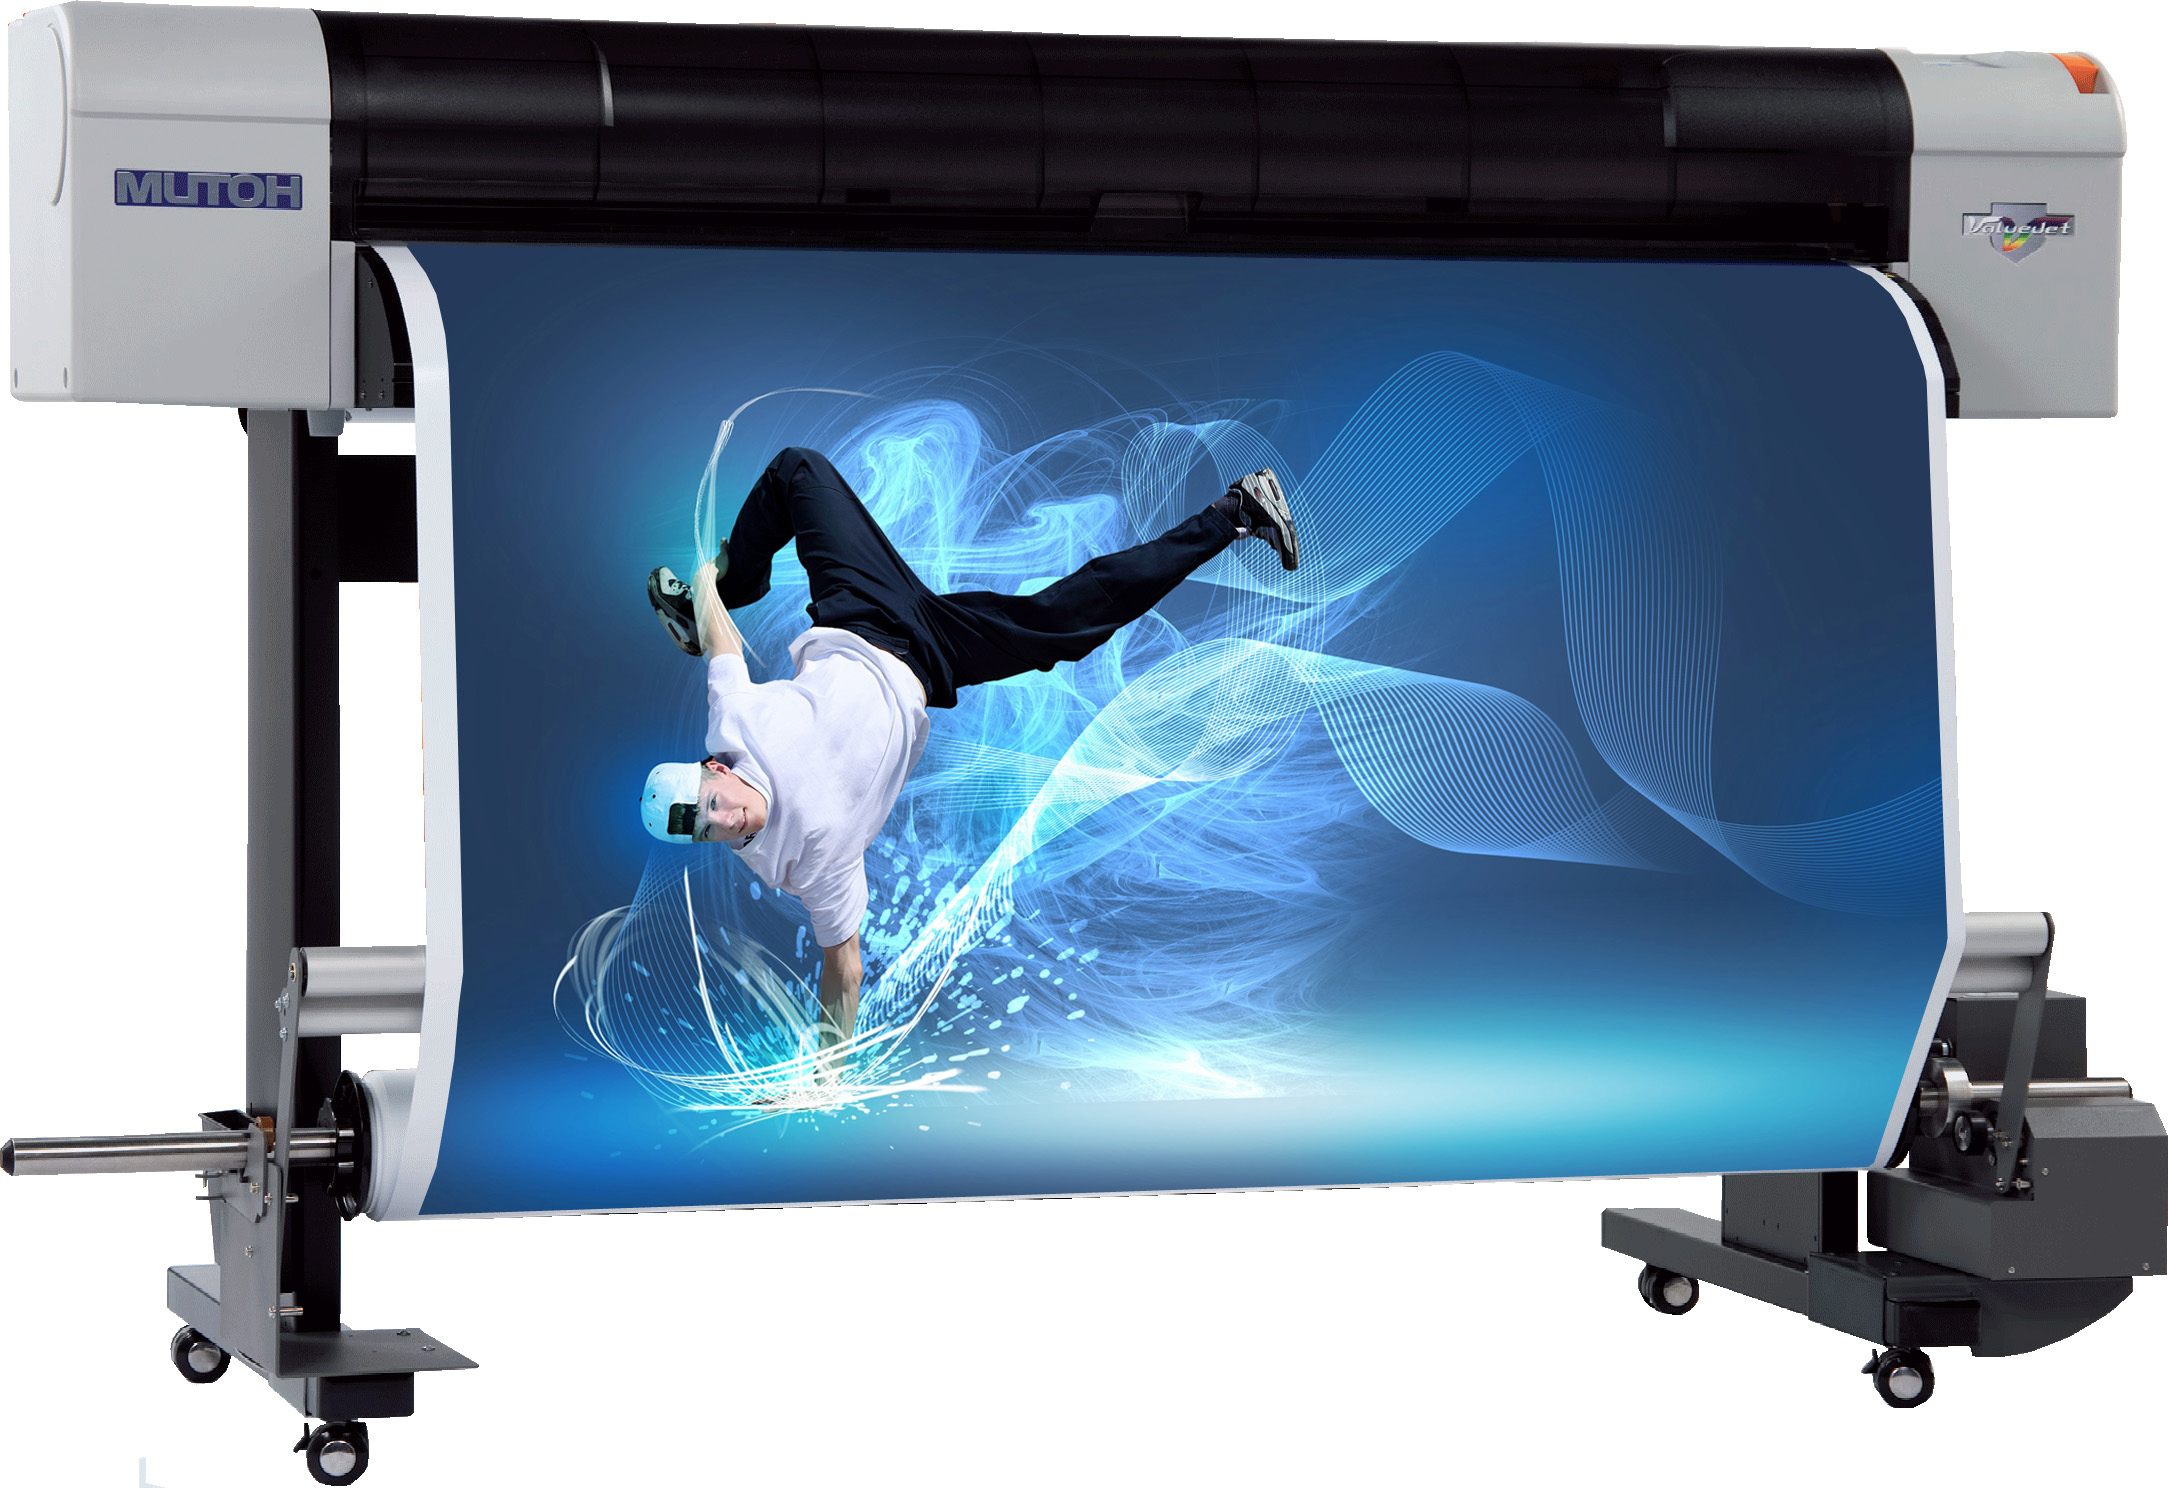 Mutoh ValueJet 1304 Image